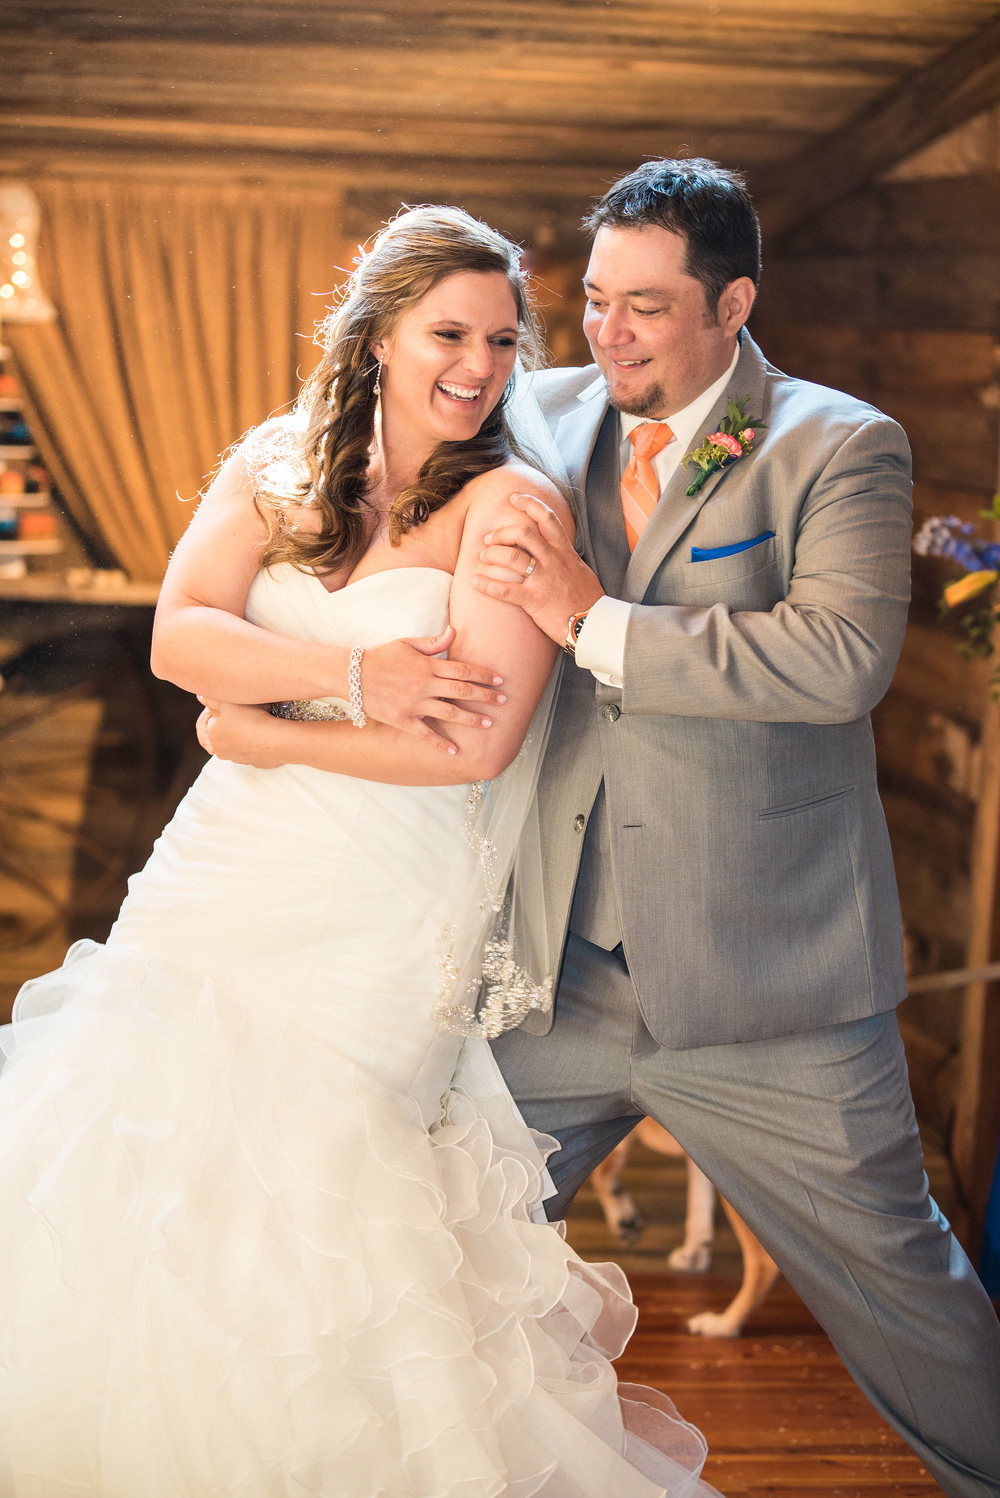 Holly + Chris - Oh where do I even start? I found Sarah on Thumbtack and gave her a call. I immediately knew she was not only a good person but also knew what she was talking about when it came to photography. She came out and did our wedding and the pictures made me cry looking through them! She and her team caught all the funny and special expressions throughout the day and she was such a fun person to work with! I'm so thankful I went with her and had the opportunity to meet such an amazing person. If you need a photographer, you don't need to look any further! She kept things flowing and kept us on schedule (not to mention helped us figure out exactly what we were doing half the day). Thank you, Sarah!!! You are the best and I truly can't wait to get to use you again for any pictures we need in the future!